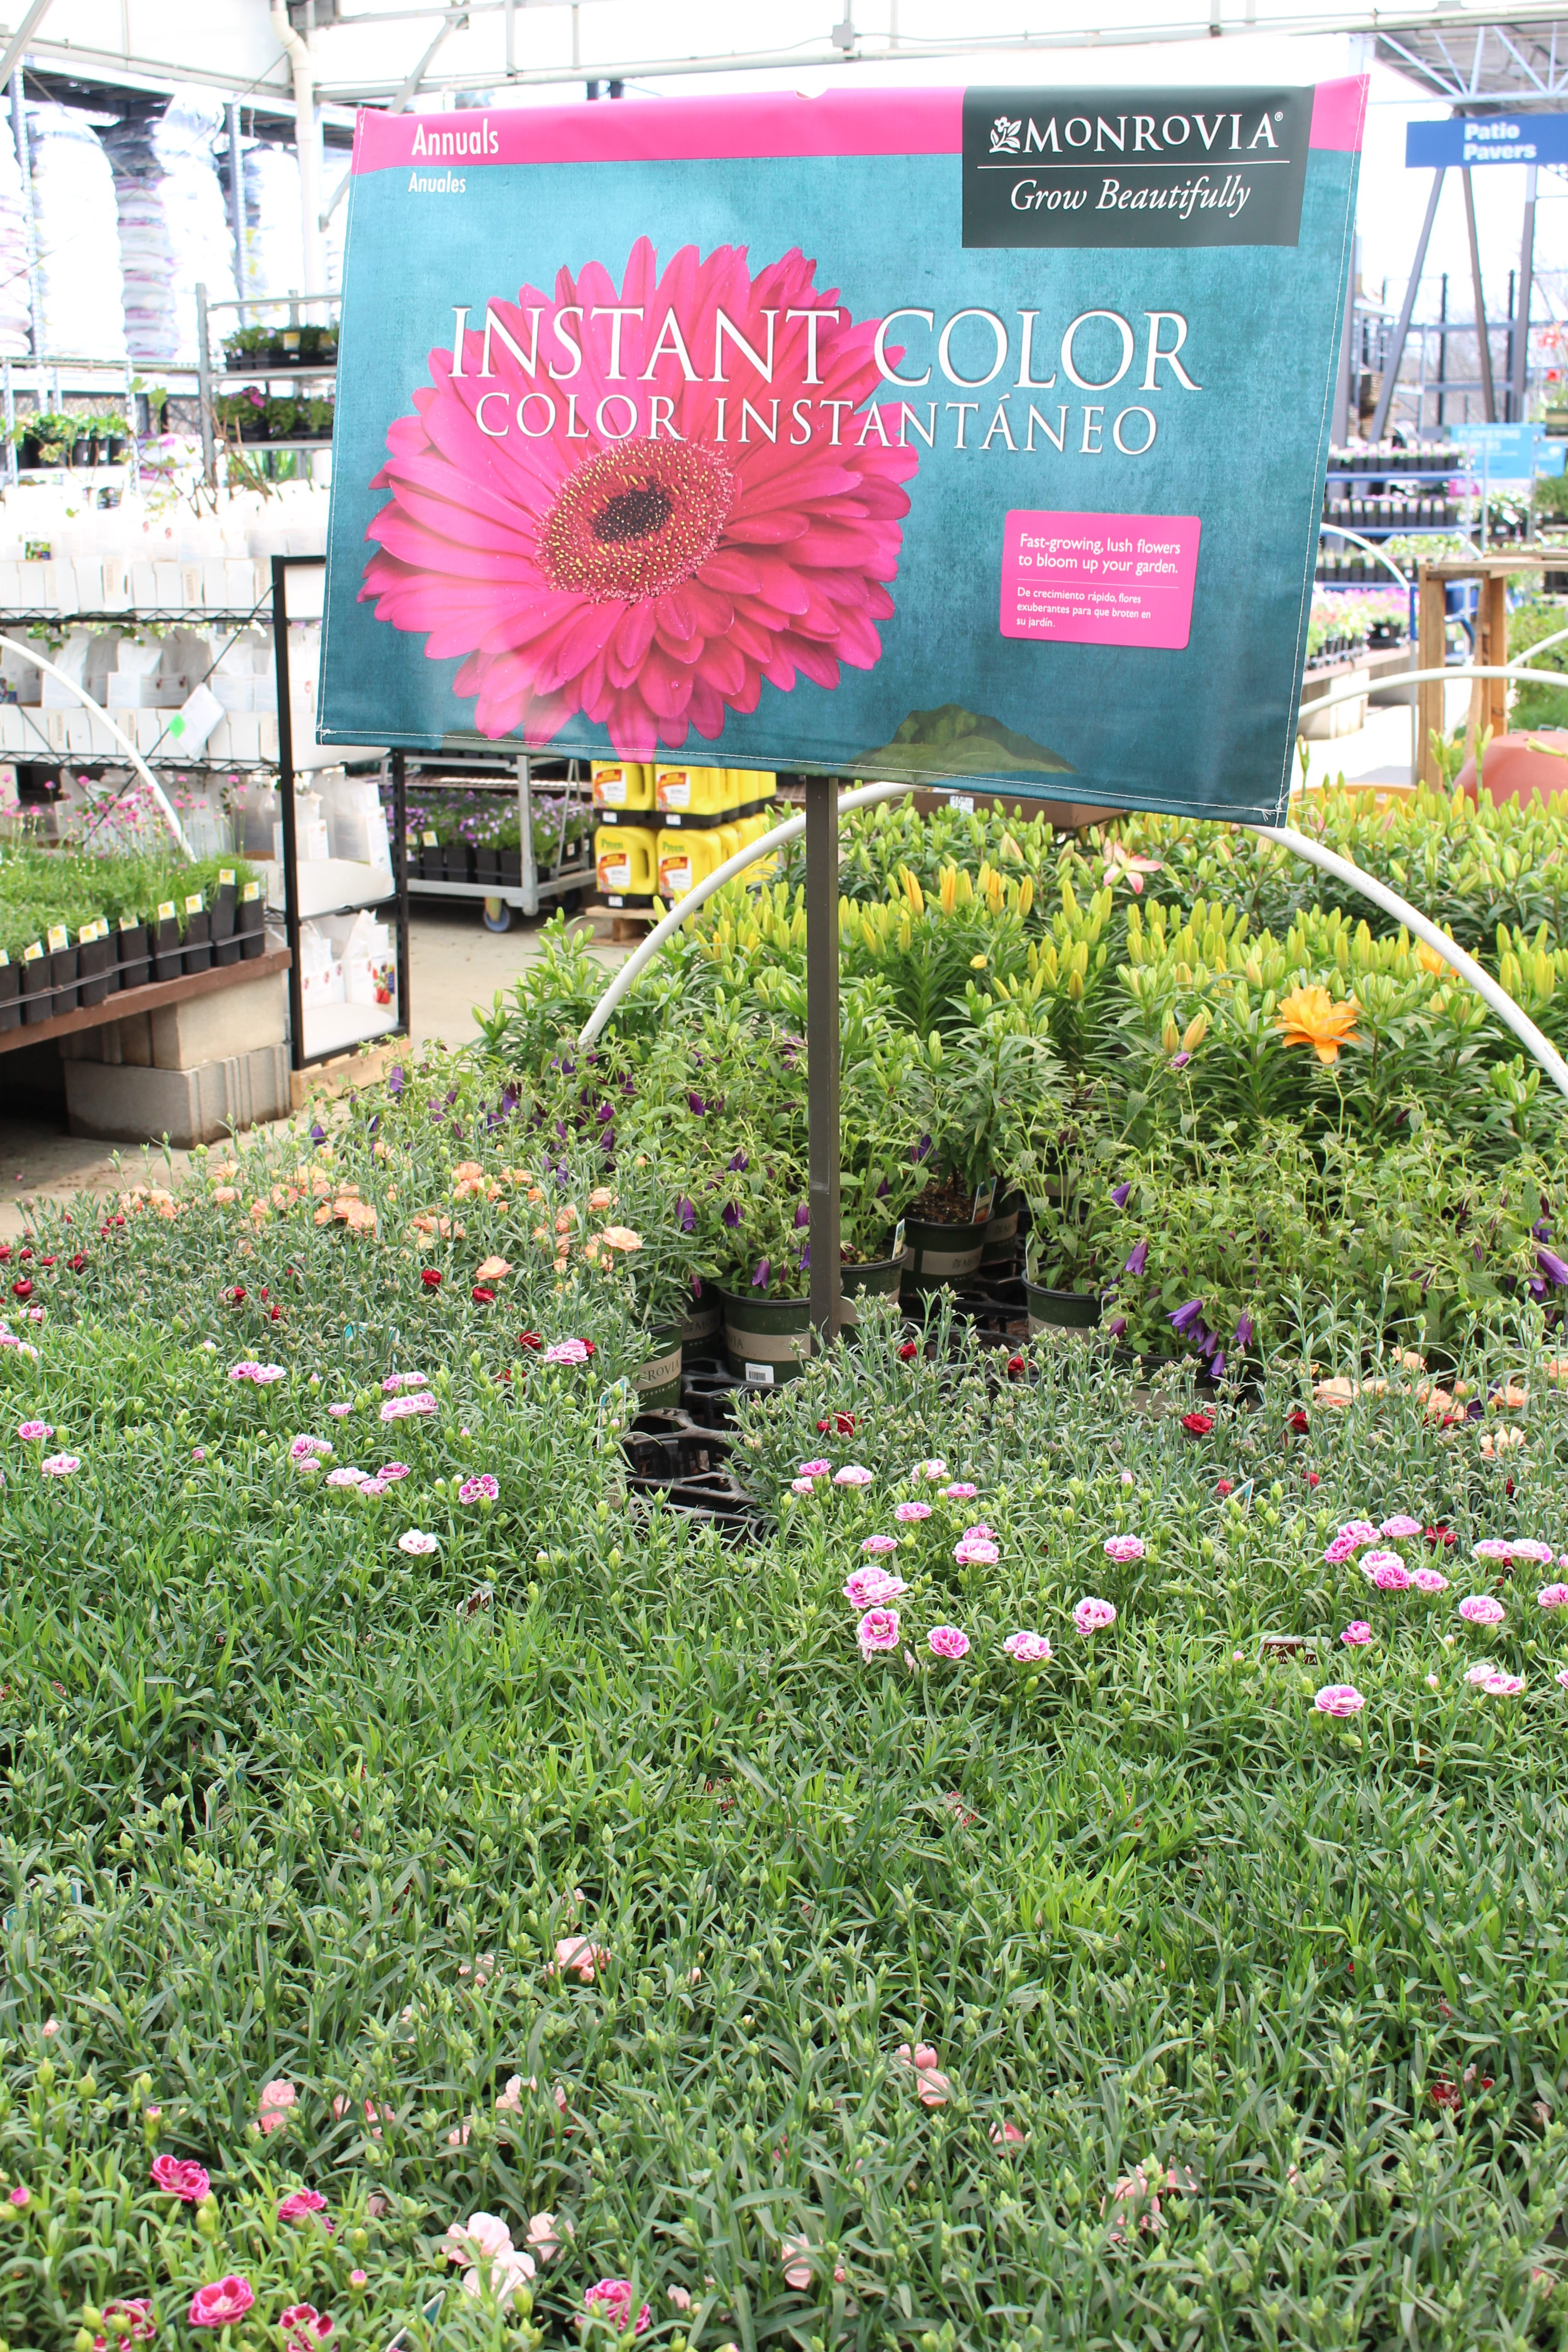 ... How To Choose The Best Plants For A Butterfly Garden  Butterflies   Plants That Attract ...